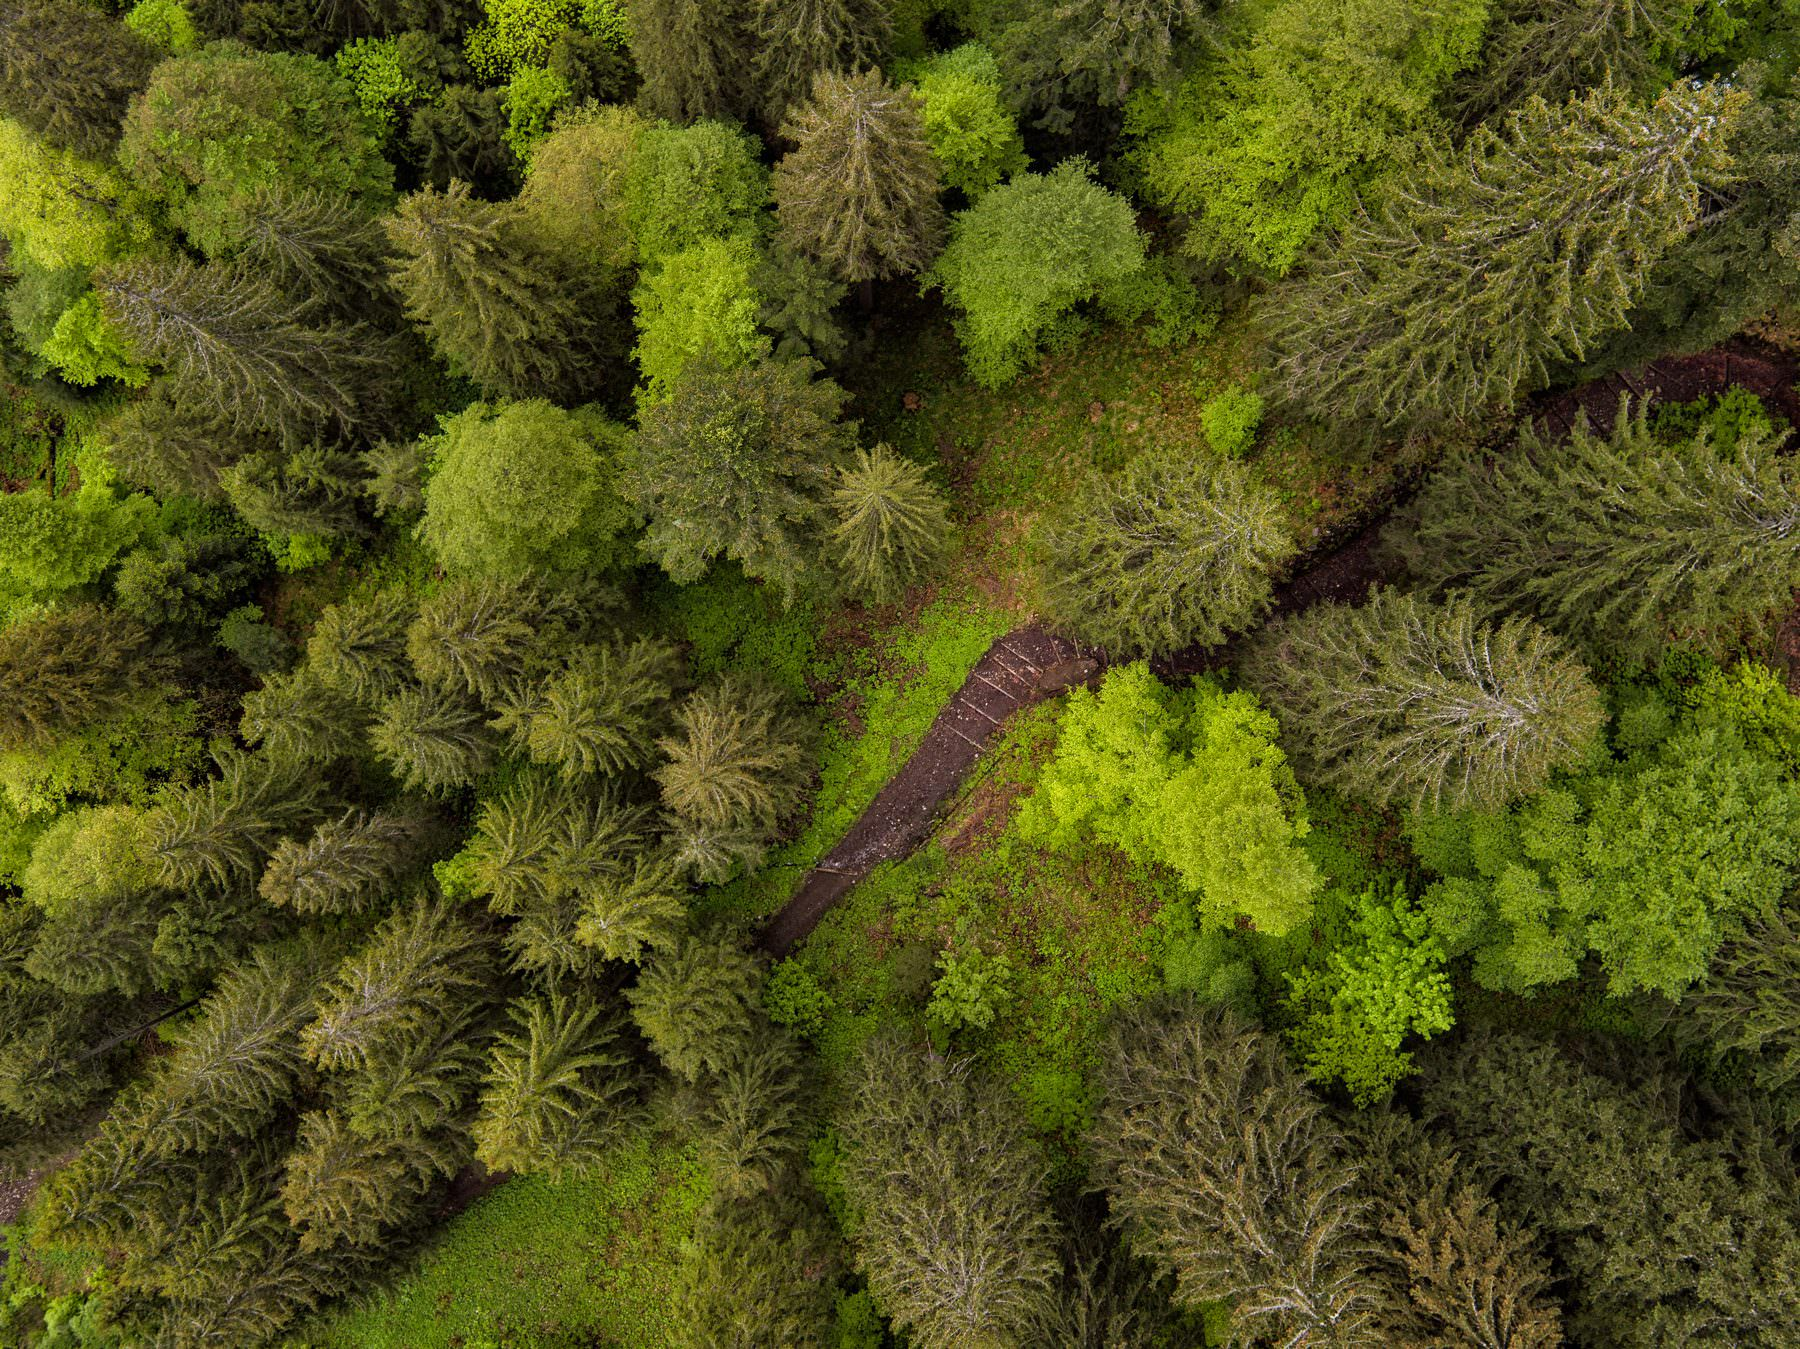 drone aerial photograph above a fresh green spring forrest © by Gerry Pacher